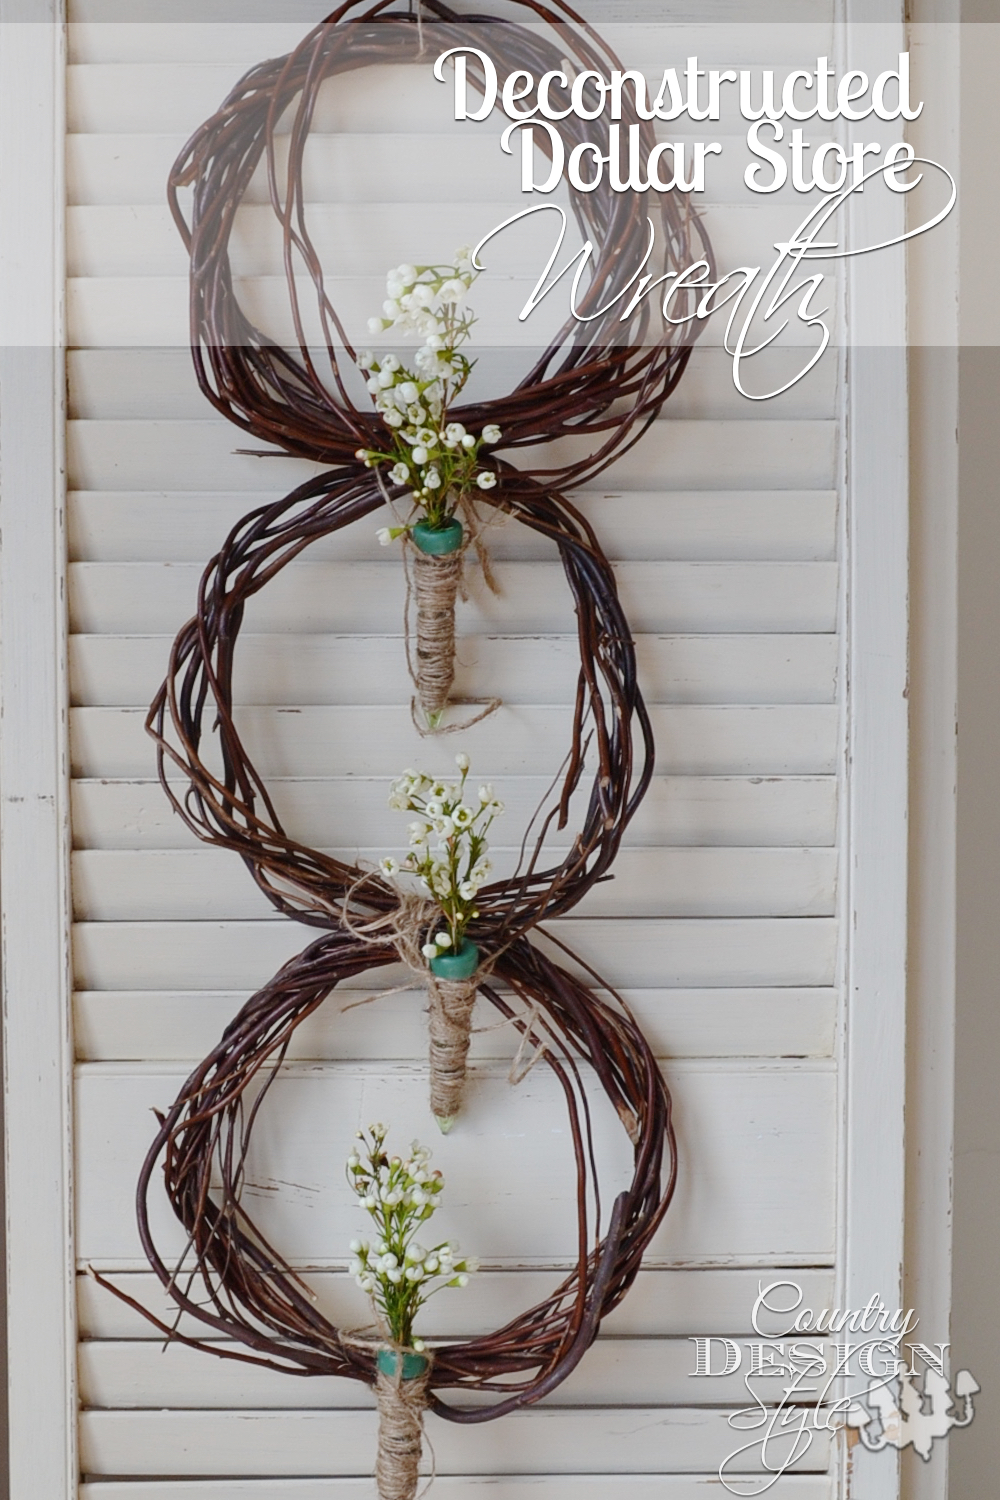 A deconstructed dollar store wreath in 15 minutes. Have you ever bought floral water picks? They are inexpensive and a must have for all you DIY decor. Country Design Style